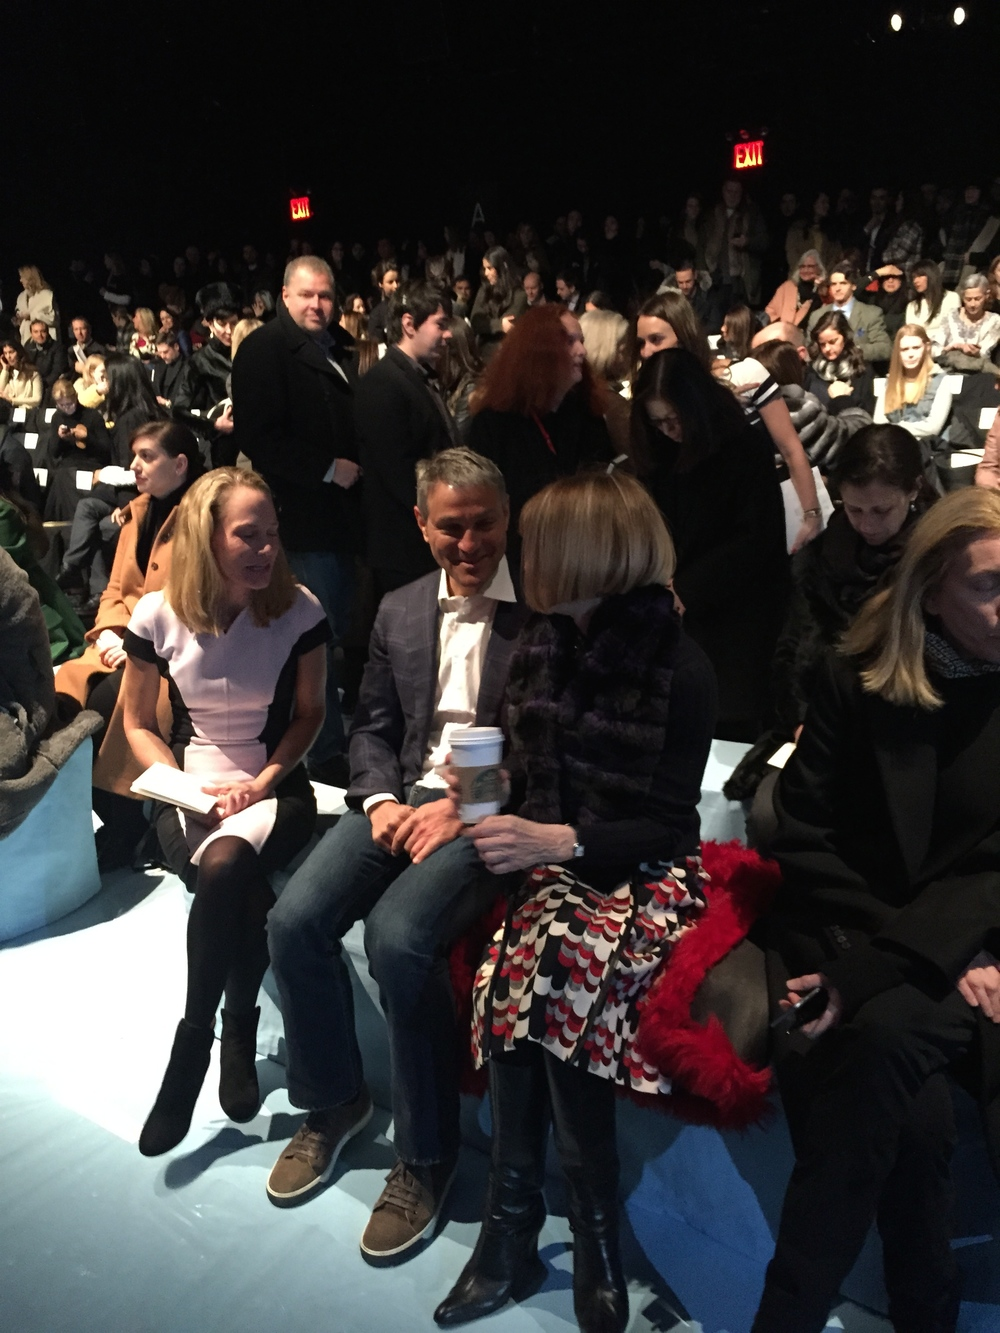 Anna Wintour in her seat front row.